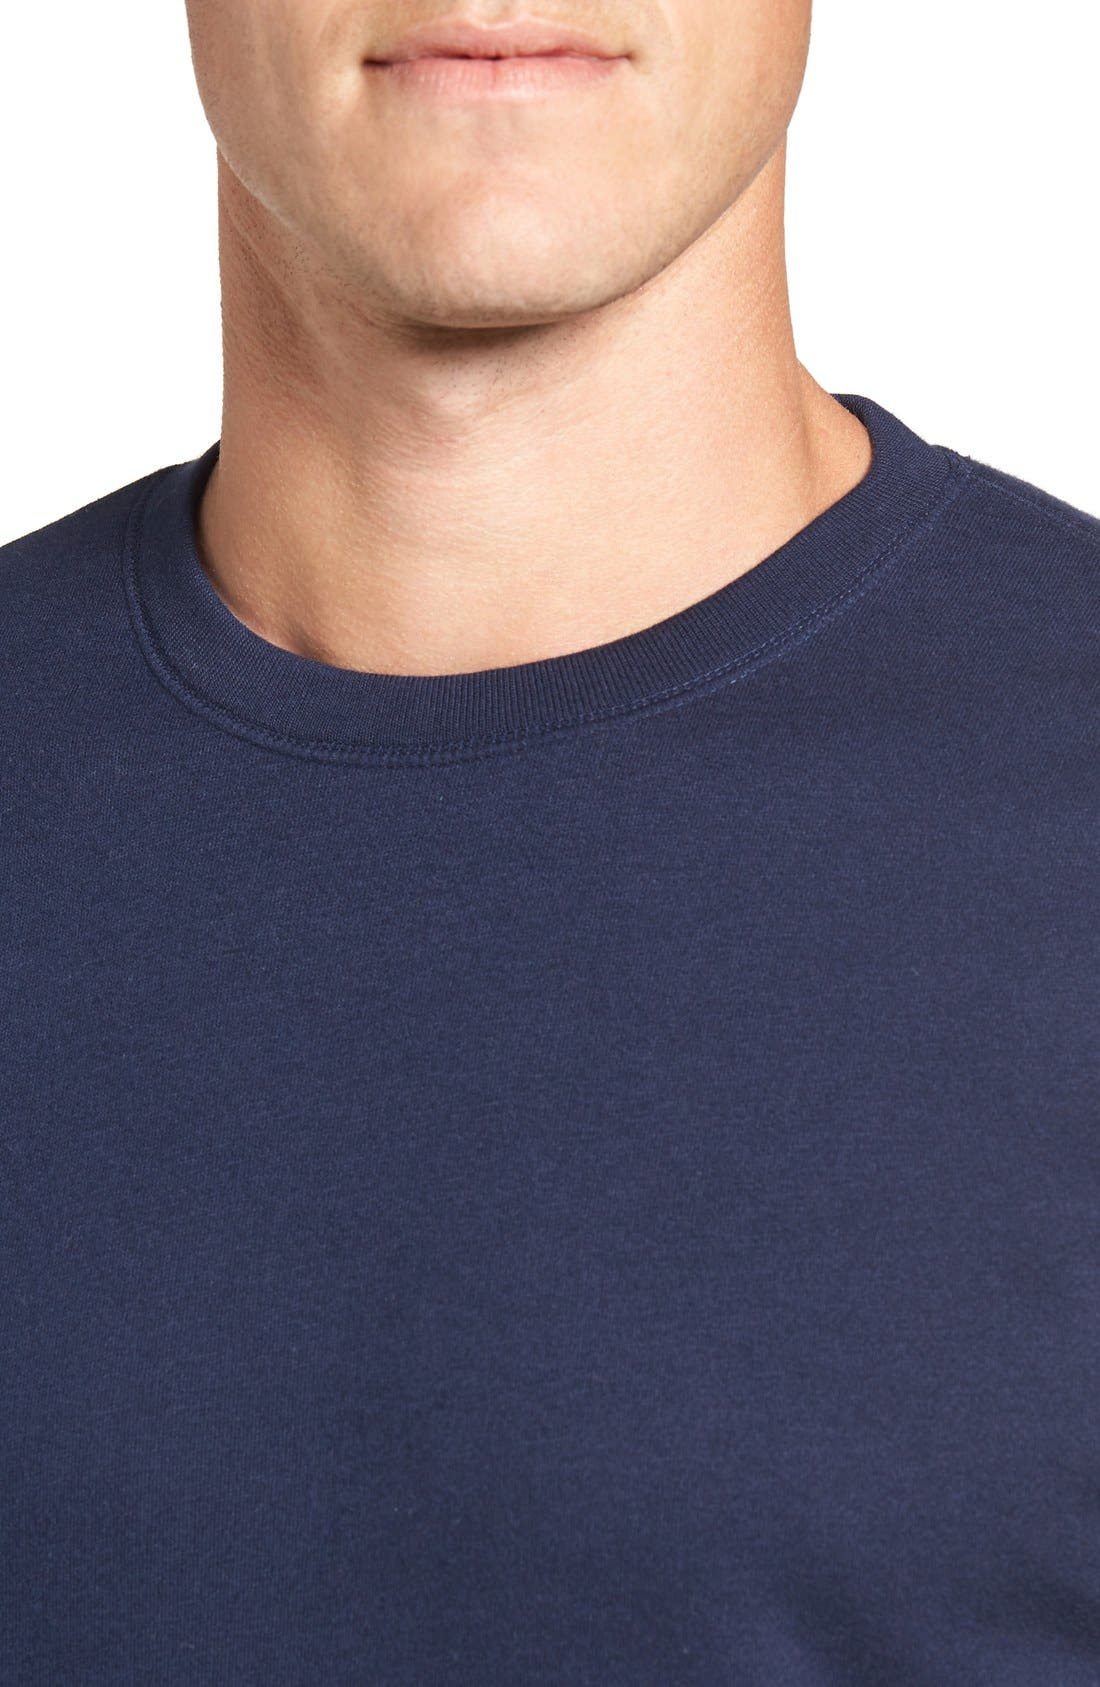 POLO RALPH LAUREN, Brushed Jersey Cotton Blend Crewneck Sweatshirt, Alternate thumbnail 8, color, CRUISE NAVY